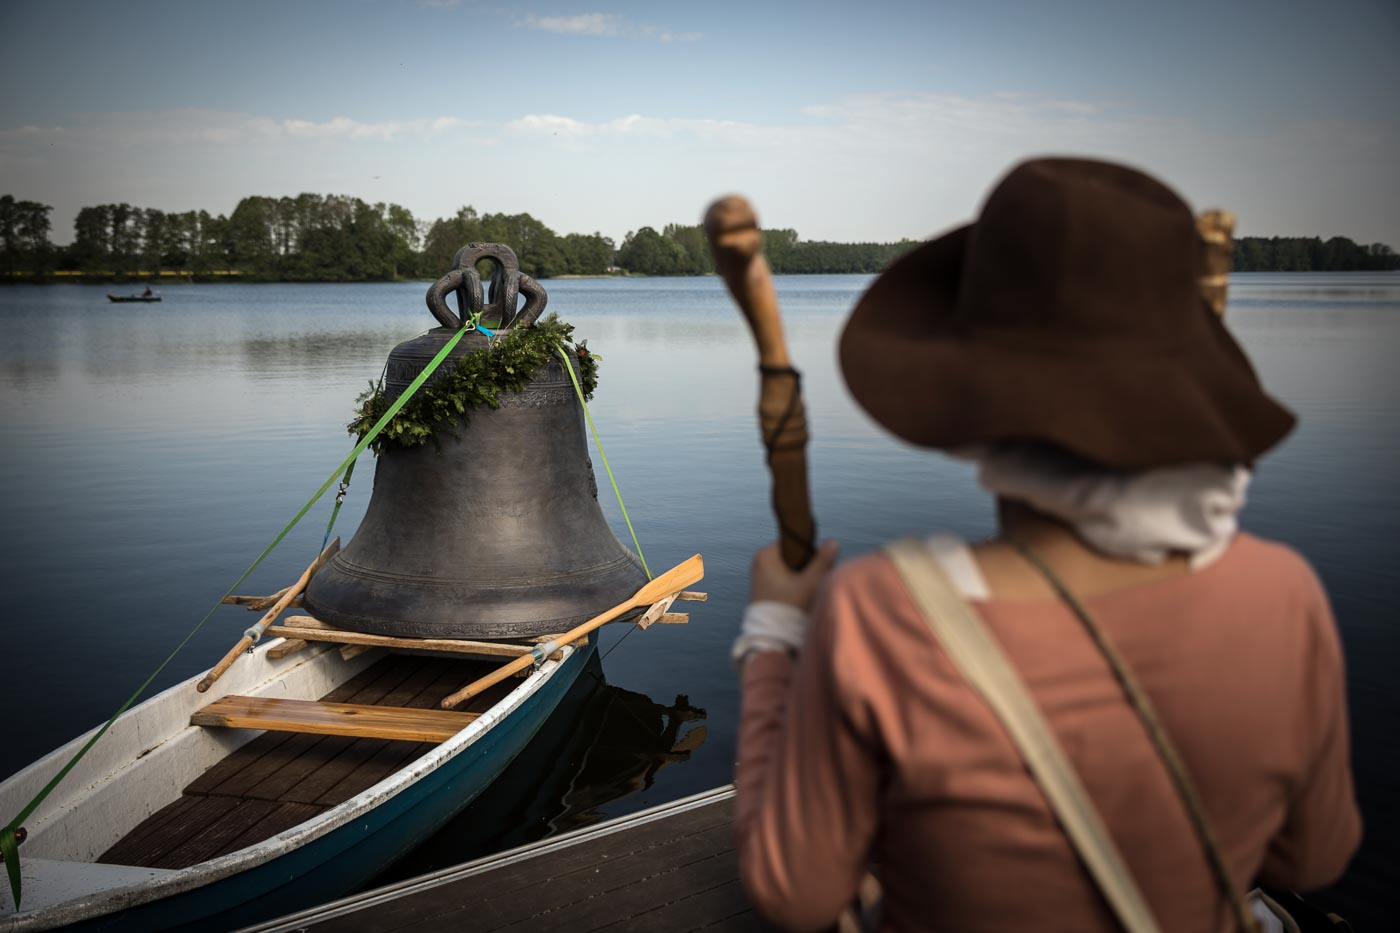 A bell on travel